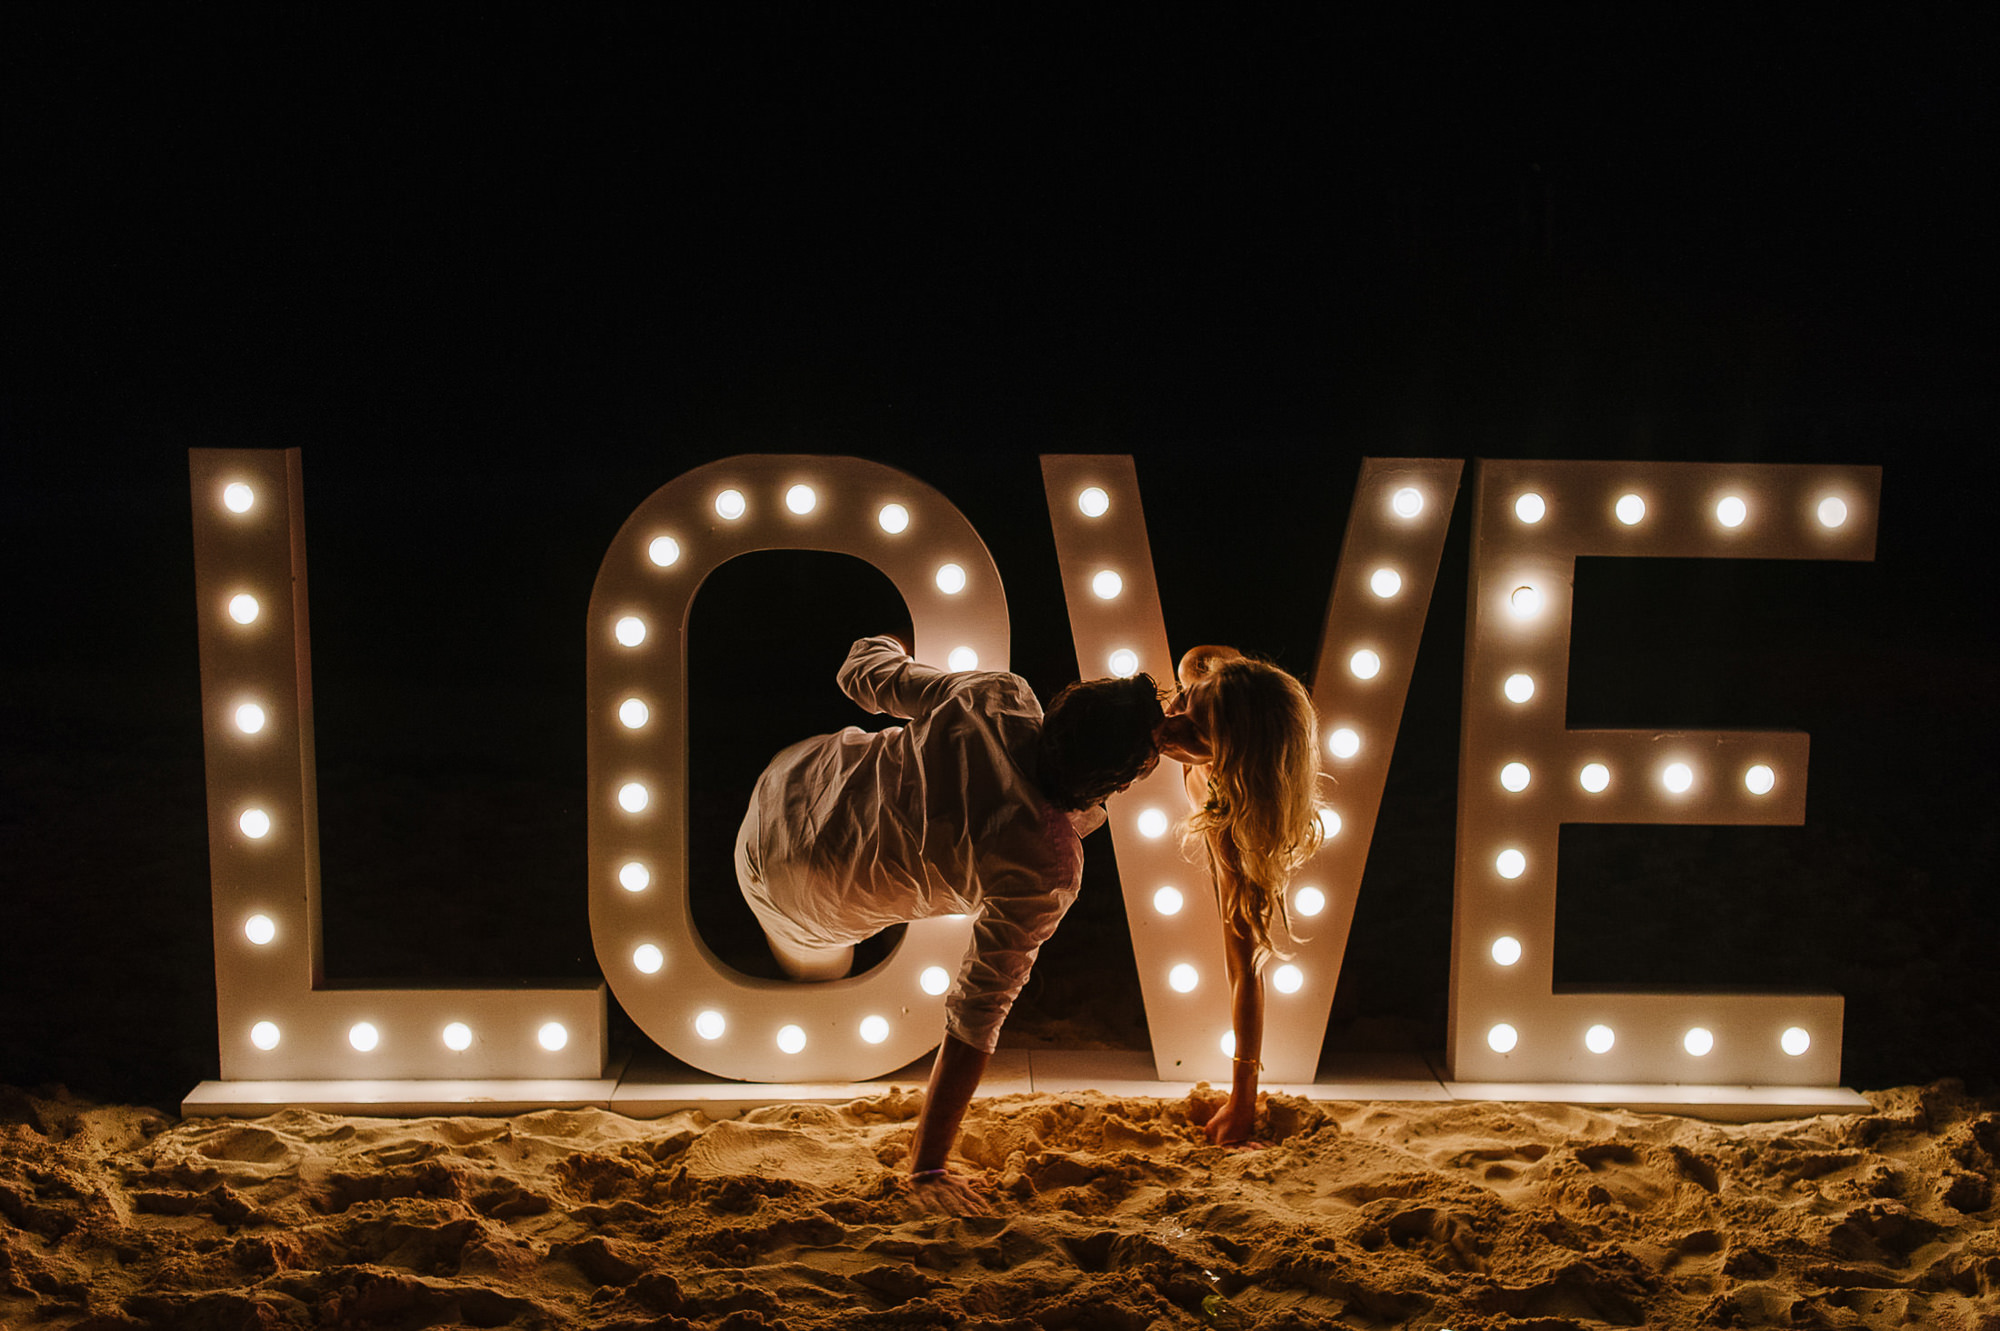 Bride and groom kiss through LOVE lit sign, by Citlalli Rico